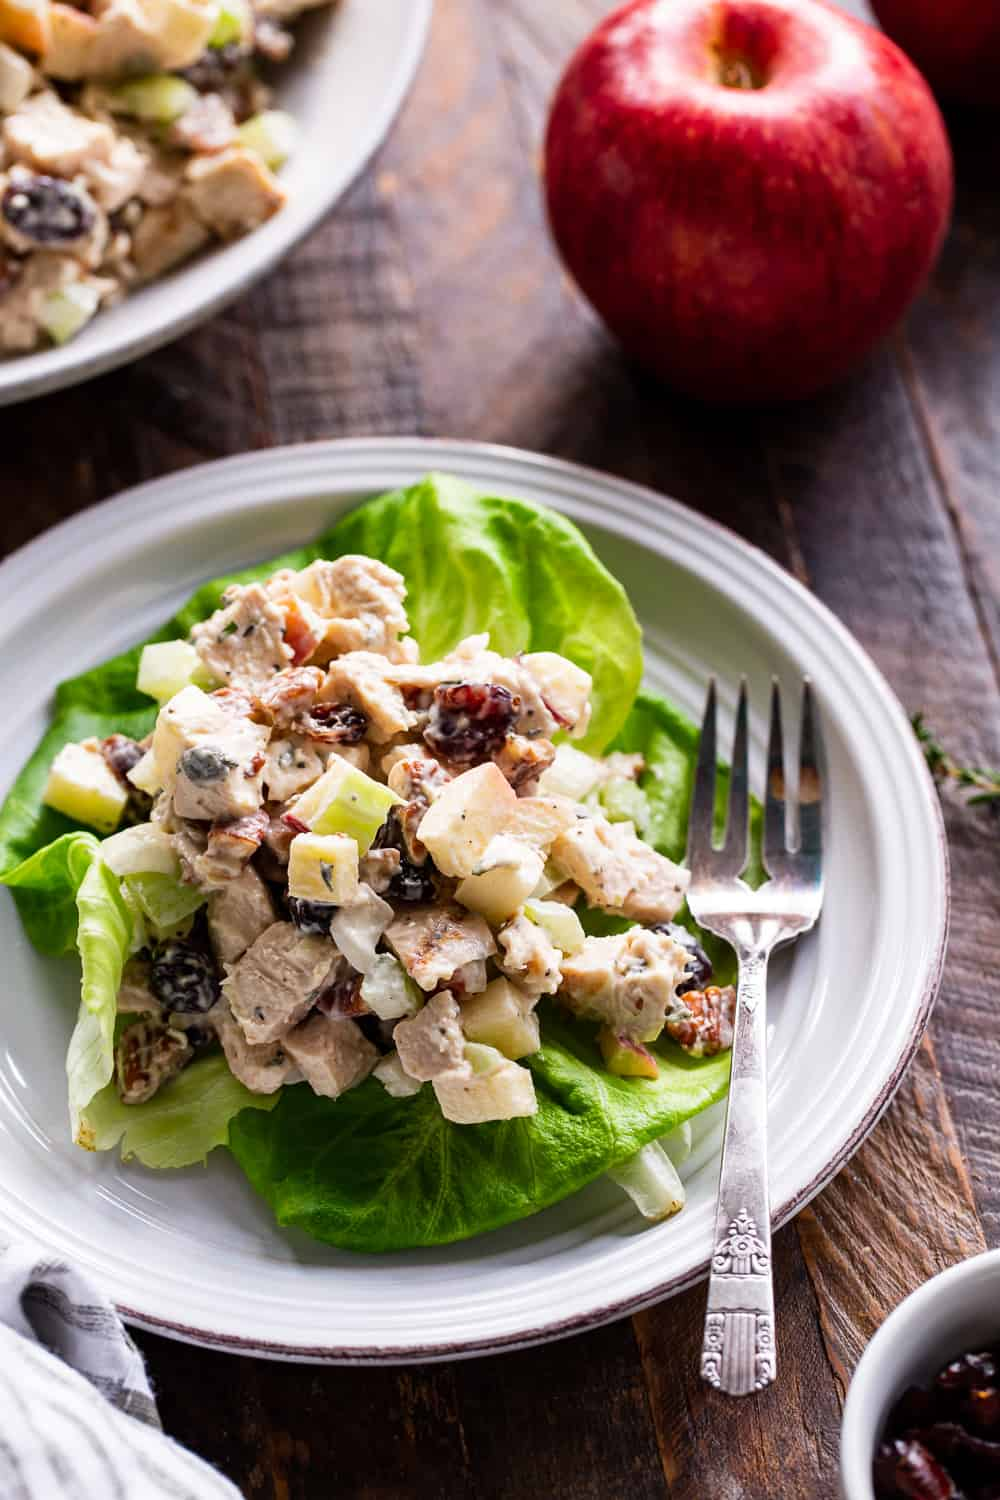 This healthy paleo chicken salad is packed with so many goodies like crunchy apples and celery, onions, cranberries, fresh herbs and tossed with an easy homemade mayo.  It's perfect over a salad, wrapped in greens or on its own for lunch or a snack!  Family approved, sugar free, dairy free and Whole30 compliant. #paleo #whole30 #cleaneating #chickensalad